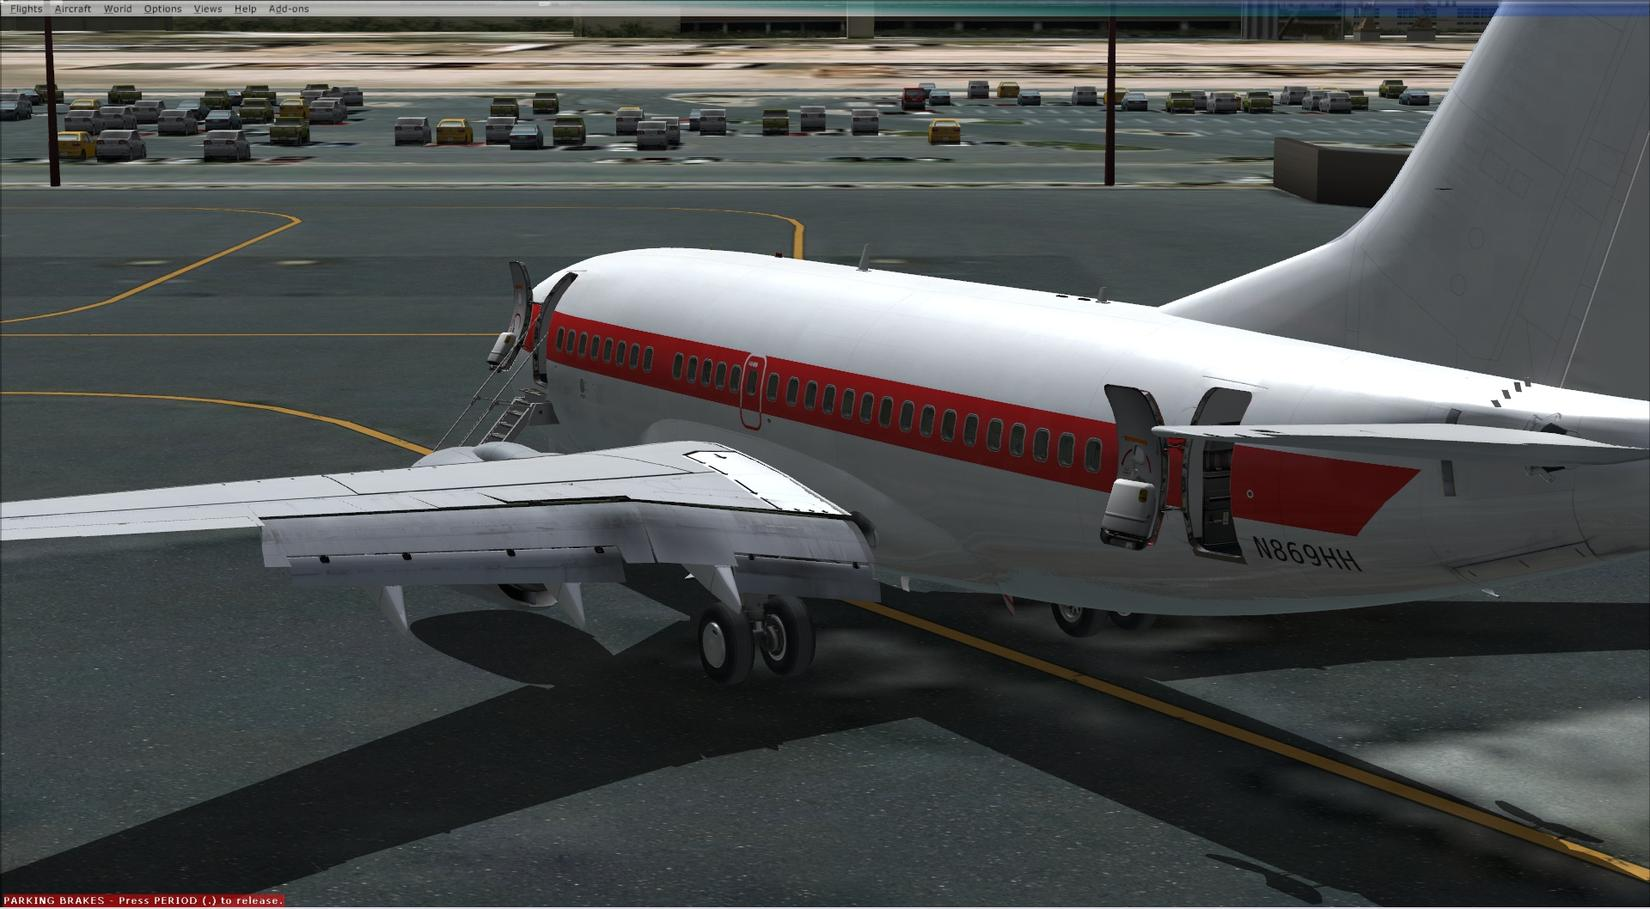 Janet 737 - SimHQ Forums